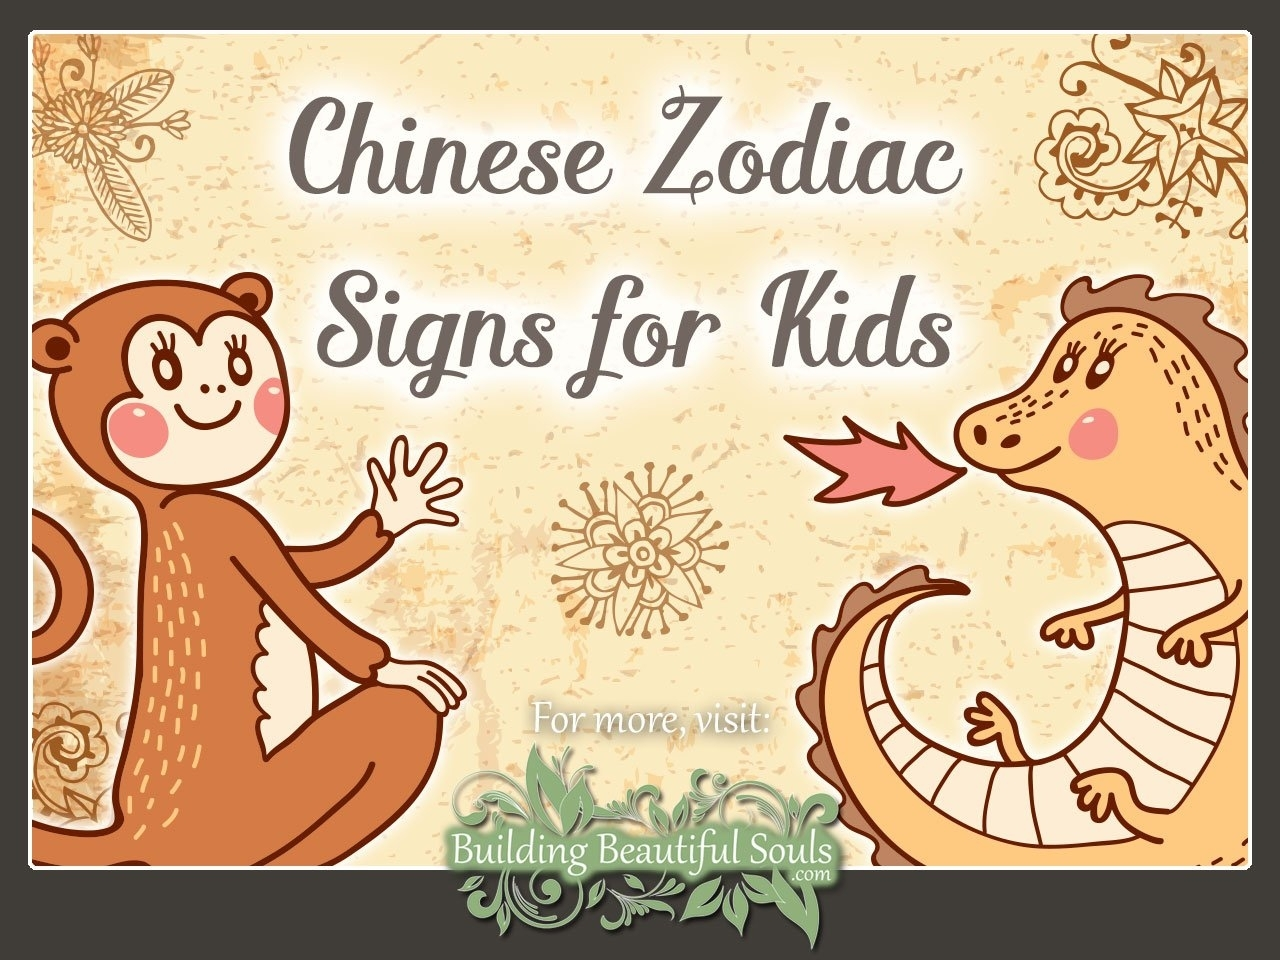 Chinese Zodiac For Kids | Learn About Chinese The Zodiac